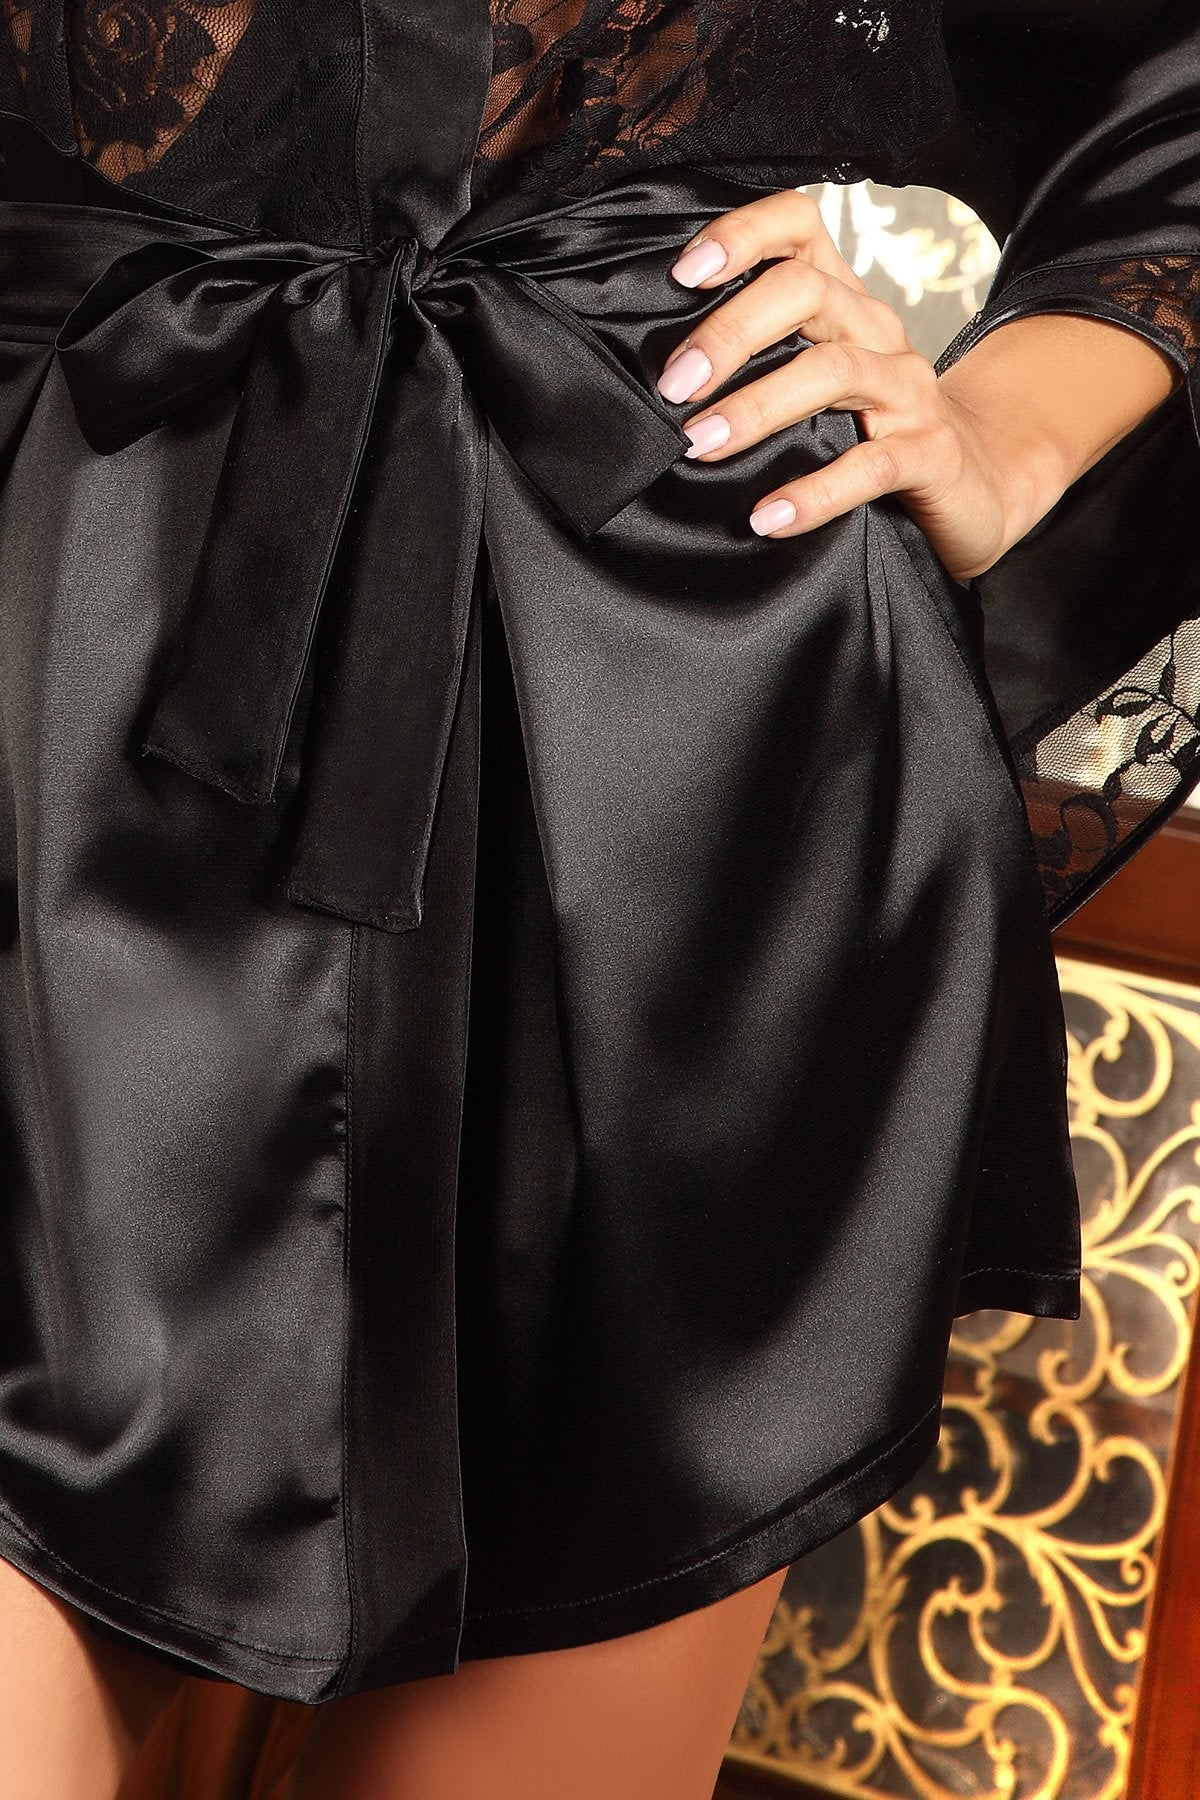 Prilance Dressing Gown Satin Set black